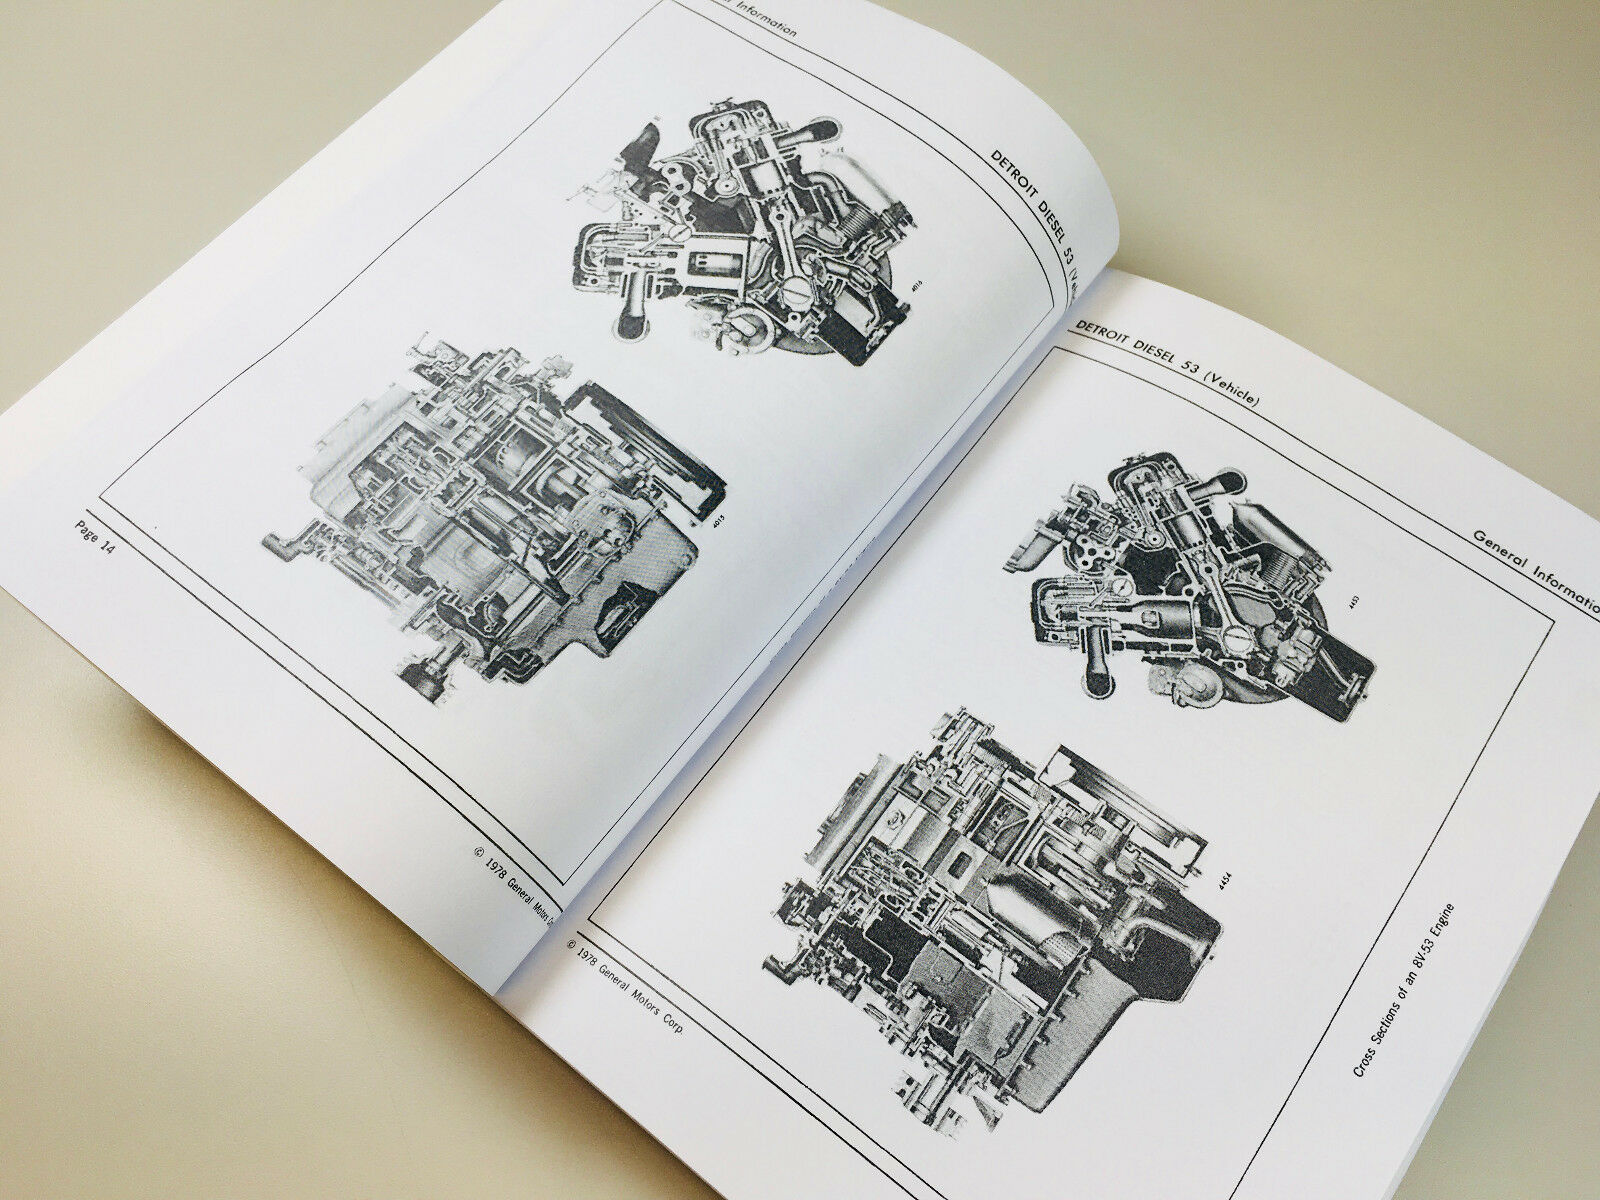 Detroit Diesel 3 53 4 6v 8v Series Engine Service Manual Wiring This Is A New Reproduction Of Factory Original Equipment Manufacturers Oem